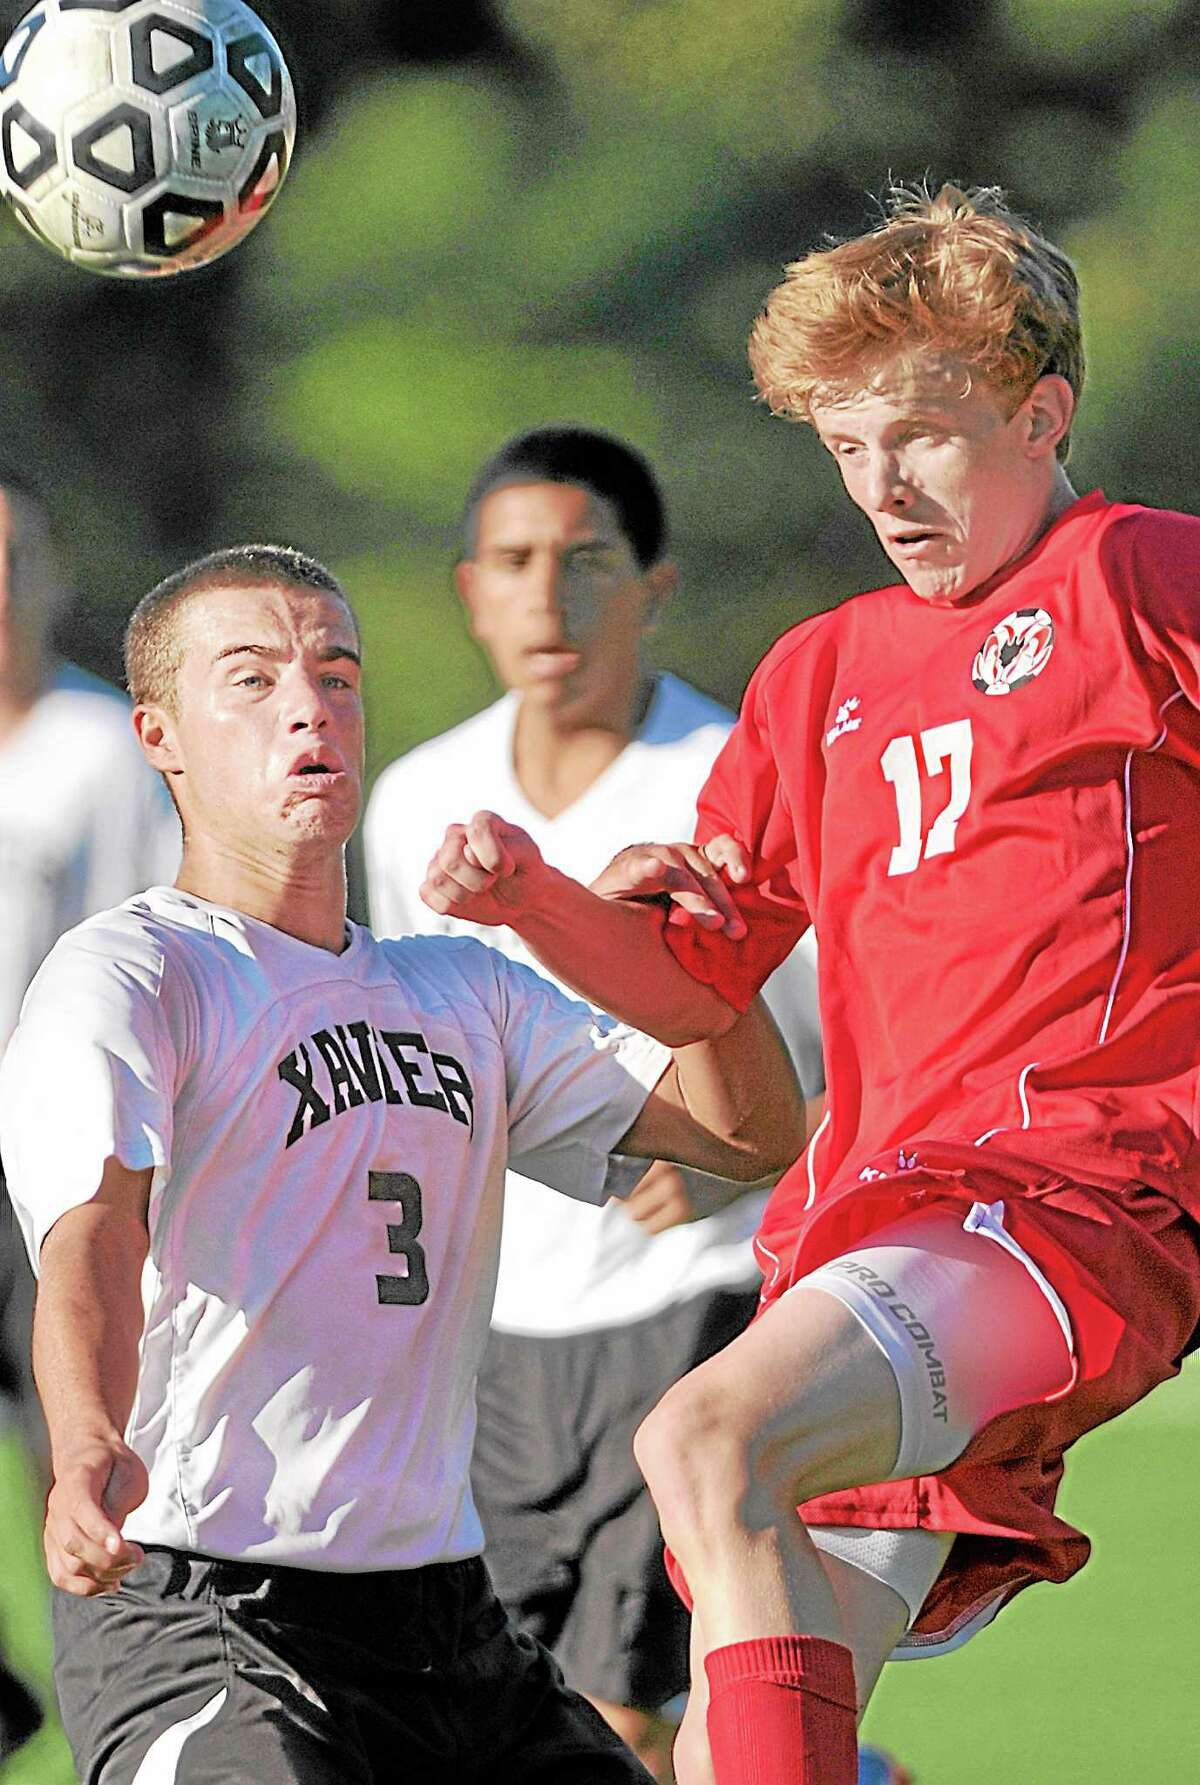 Xavier's Brendan Charton battles Cheshire's Justin Kunz for possession in the second half of Tuesday's game at TD Bank Oakwood Soccer Park in Portland. The game ended in a 0-0 tie.